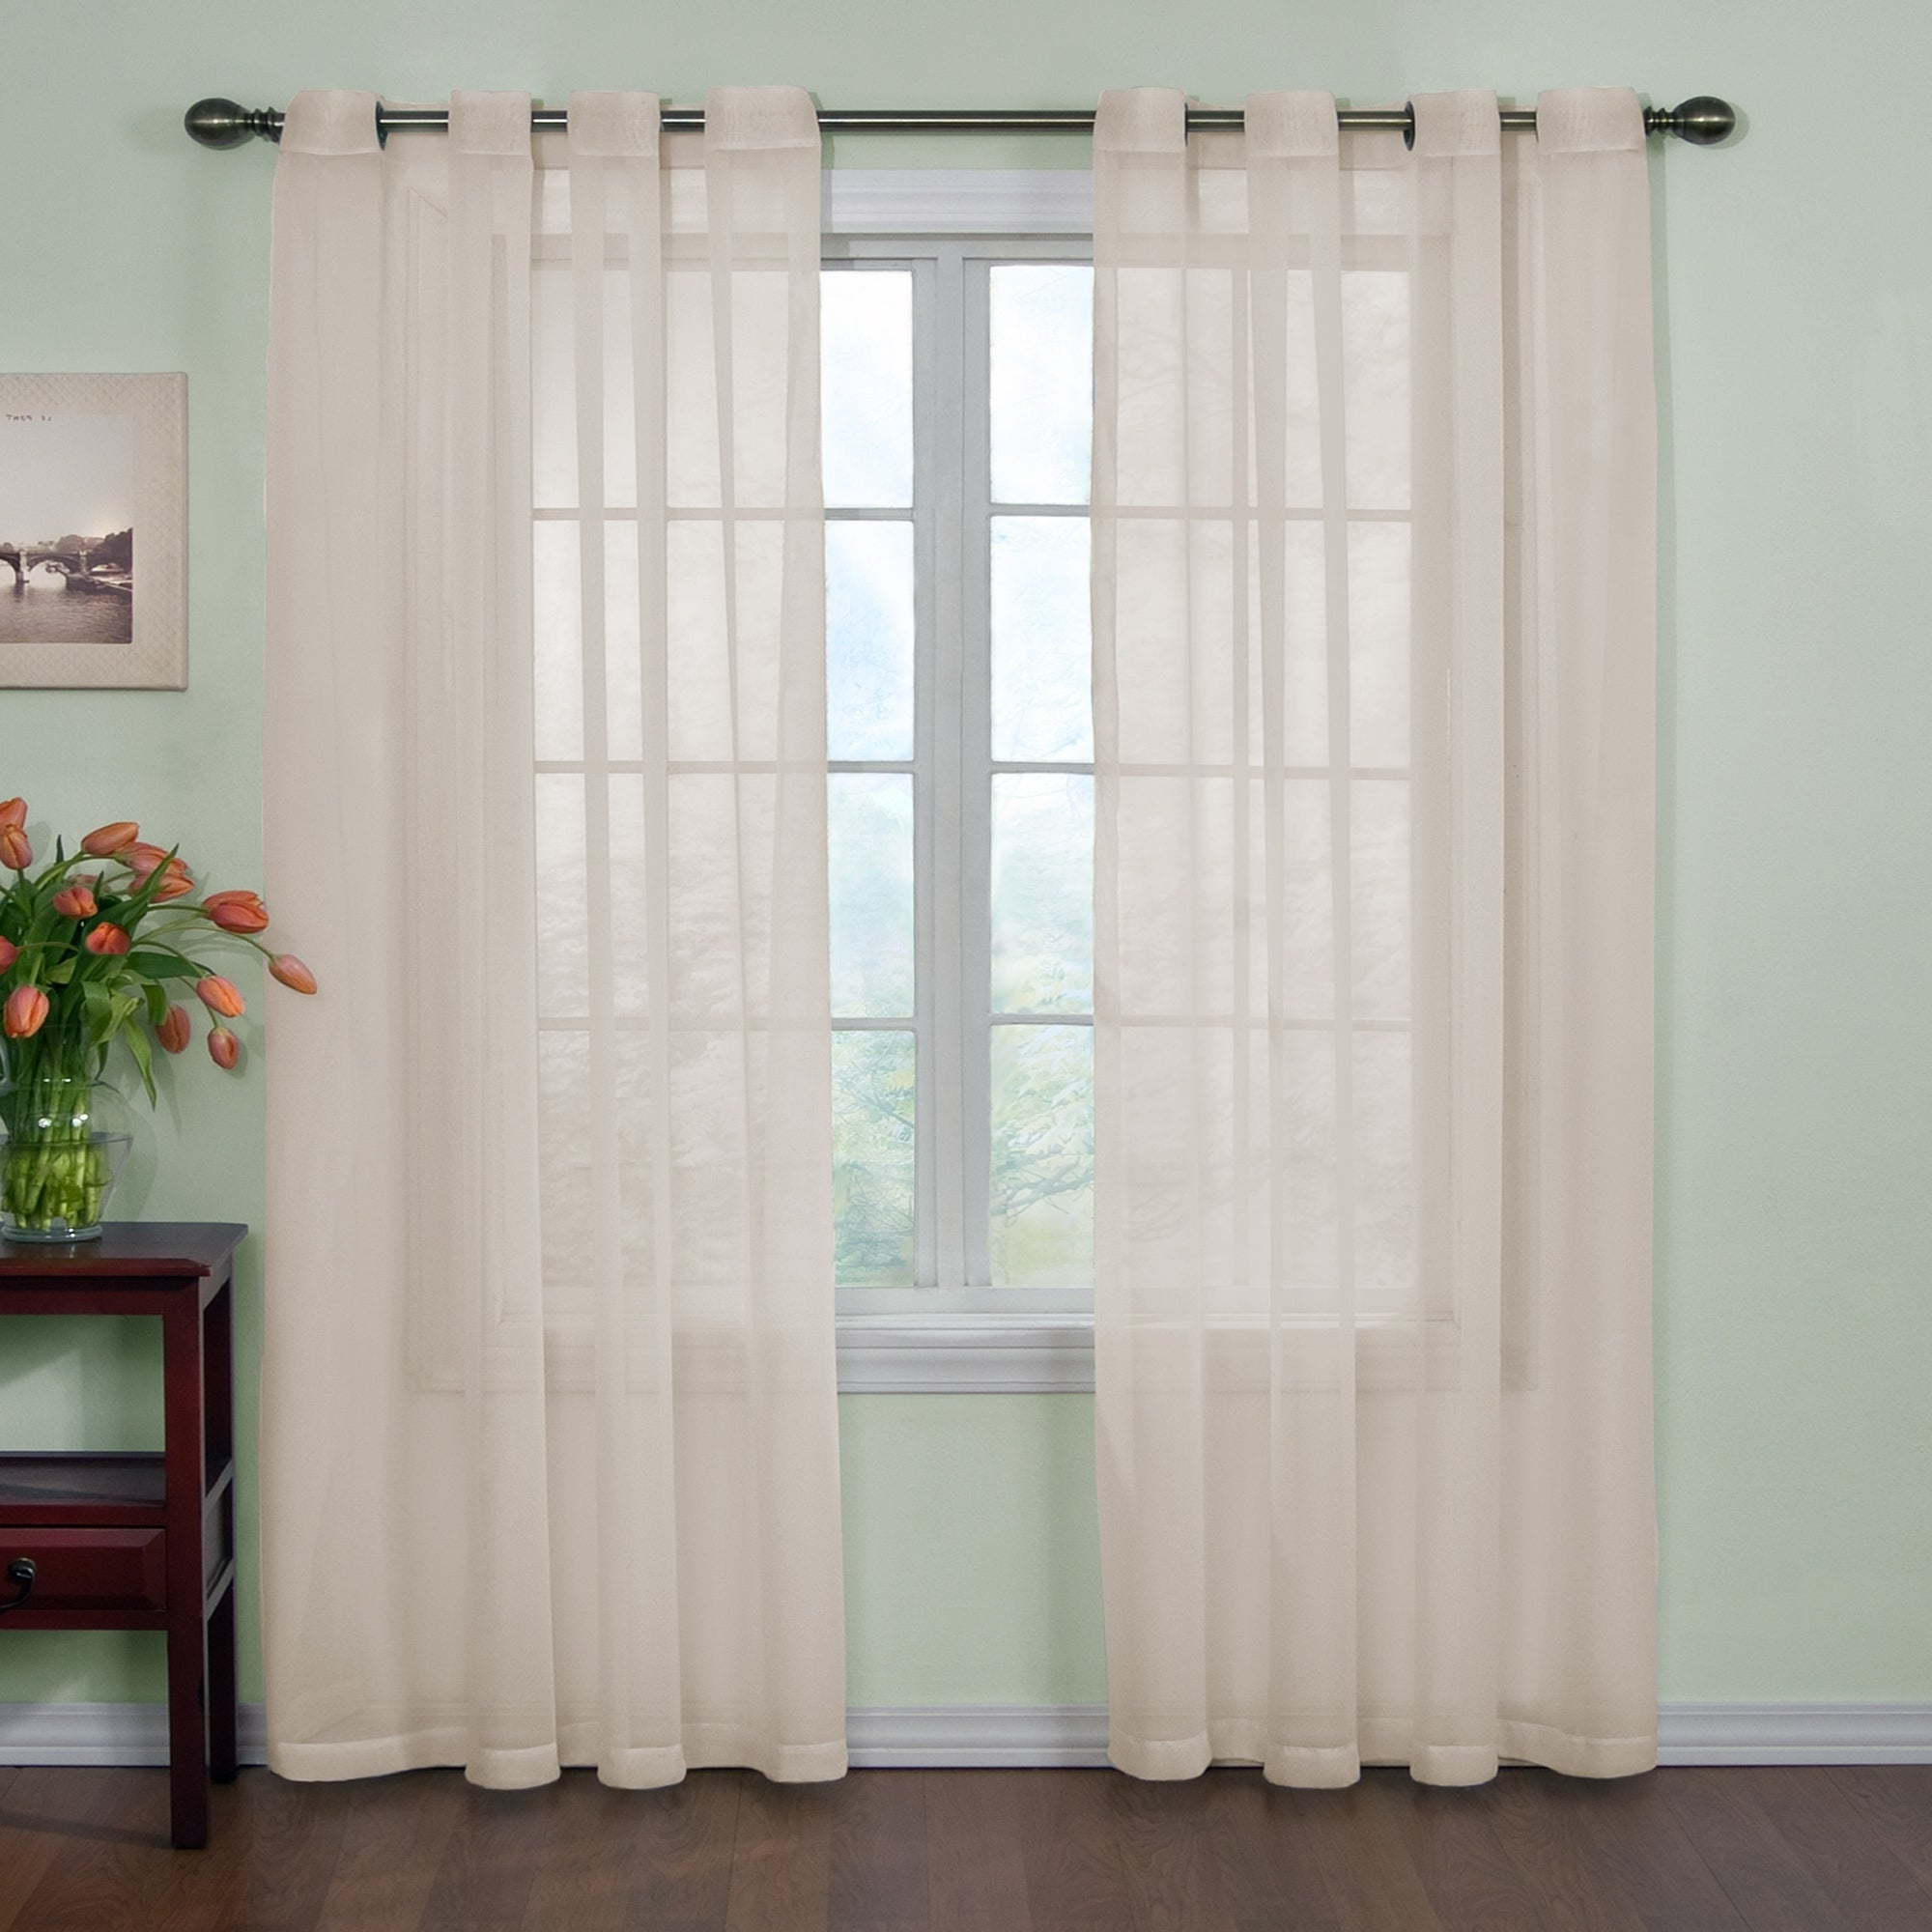 Featured Photo of Arm And Hammer Curtains Fresh Odor Neutralizing Single Curtain Panels